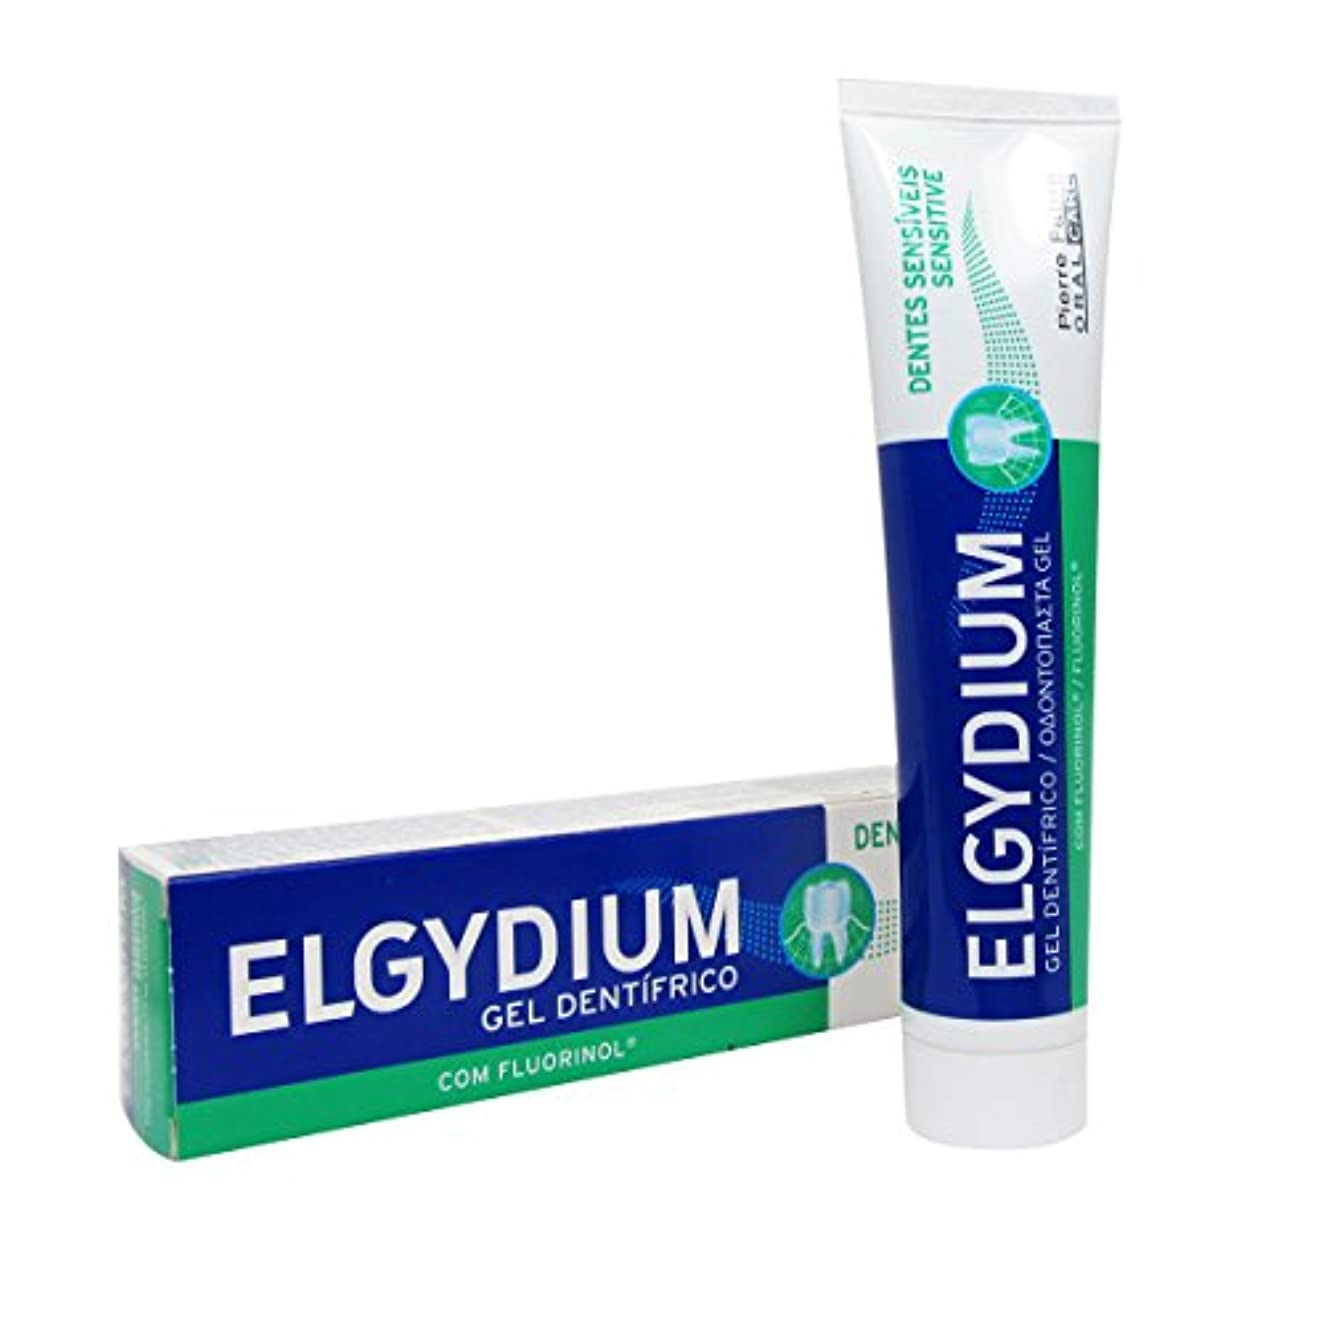 Elgydium Sensitive Teeth Toothpaste Gel 75ml [並行輸入品]